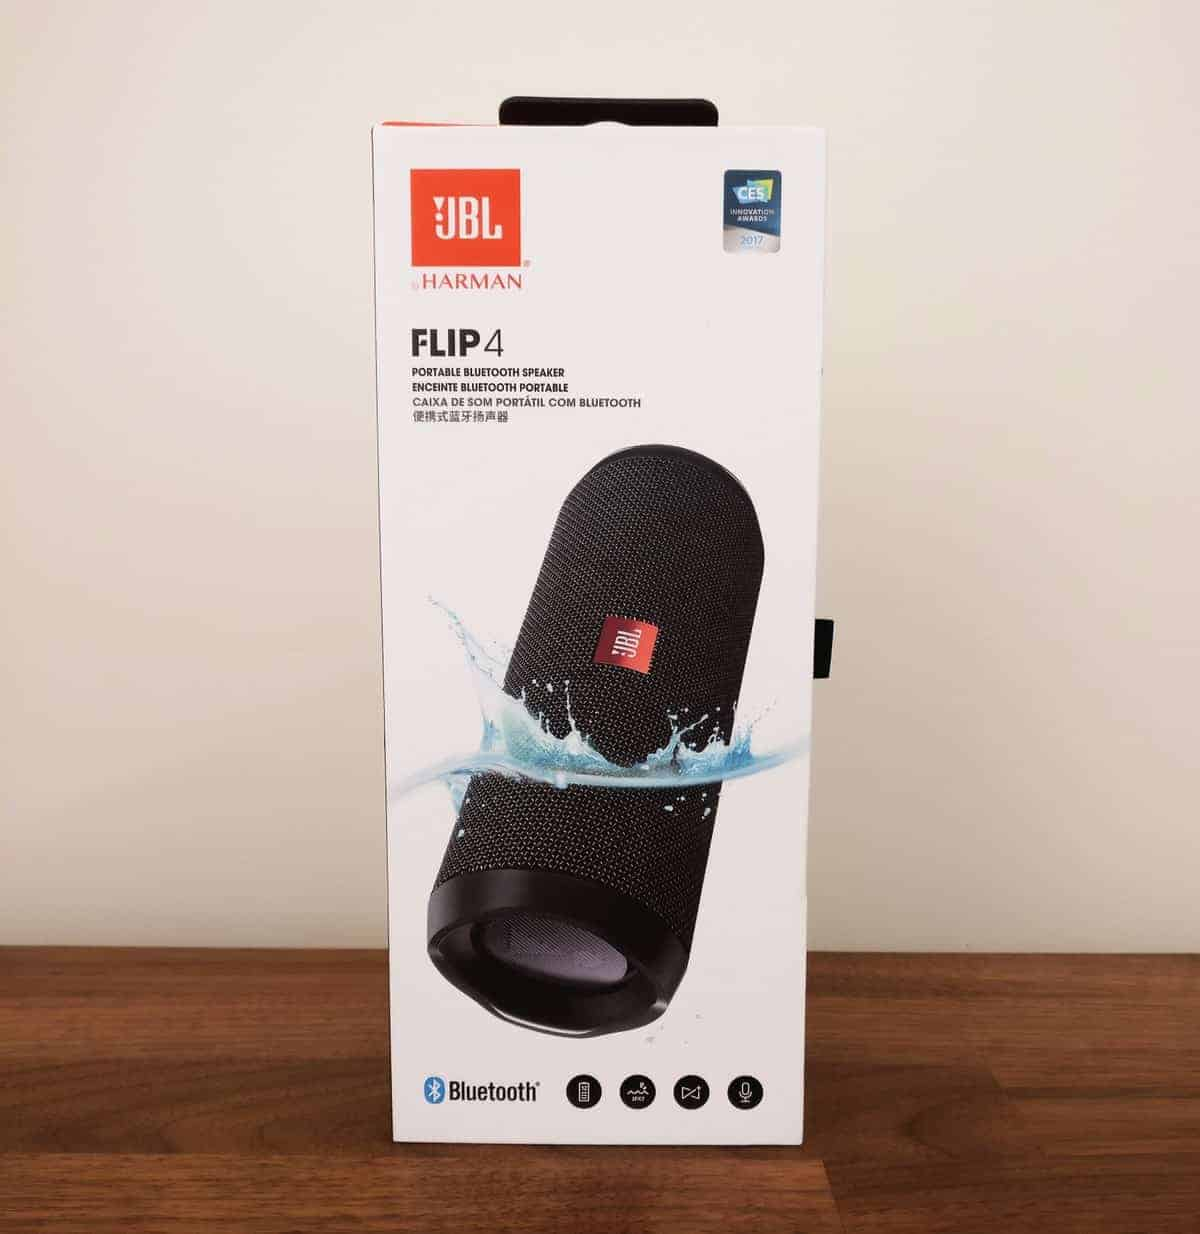 jbl flip 4 bluetooth speaker review the streaming blog. Black Bedroom Furniture Sets. Home Design Ideas